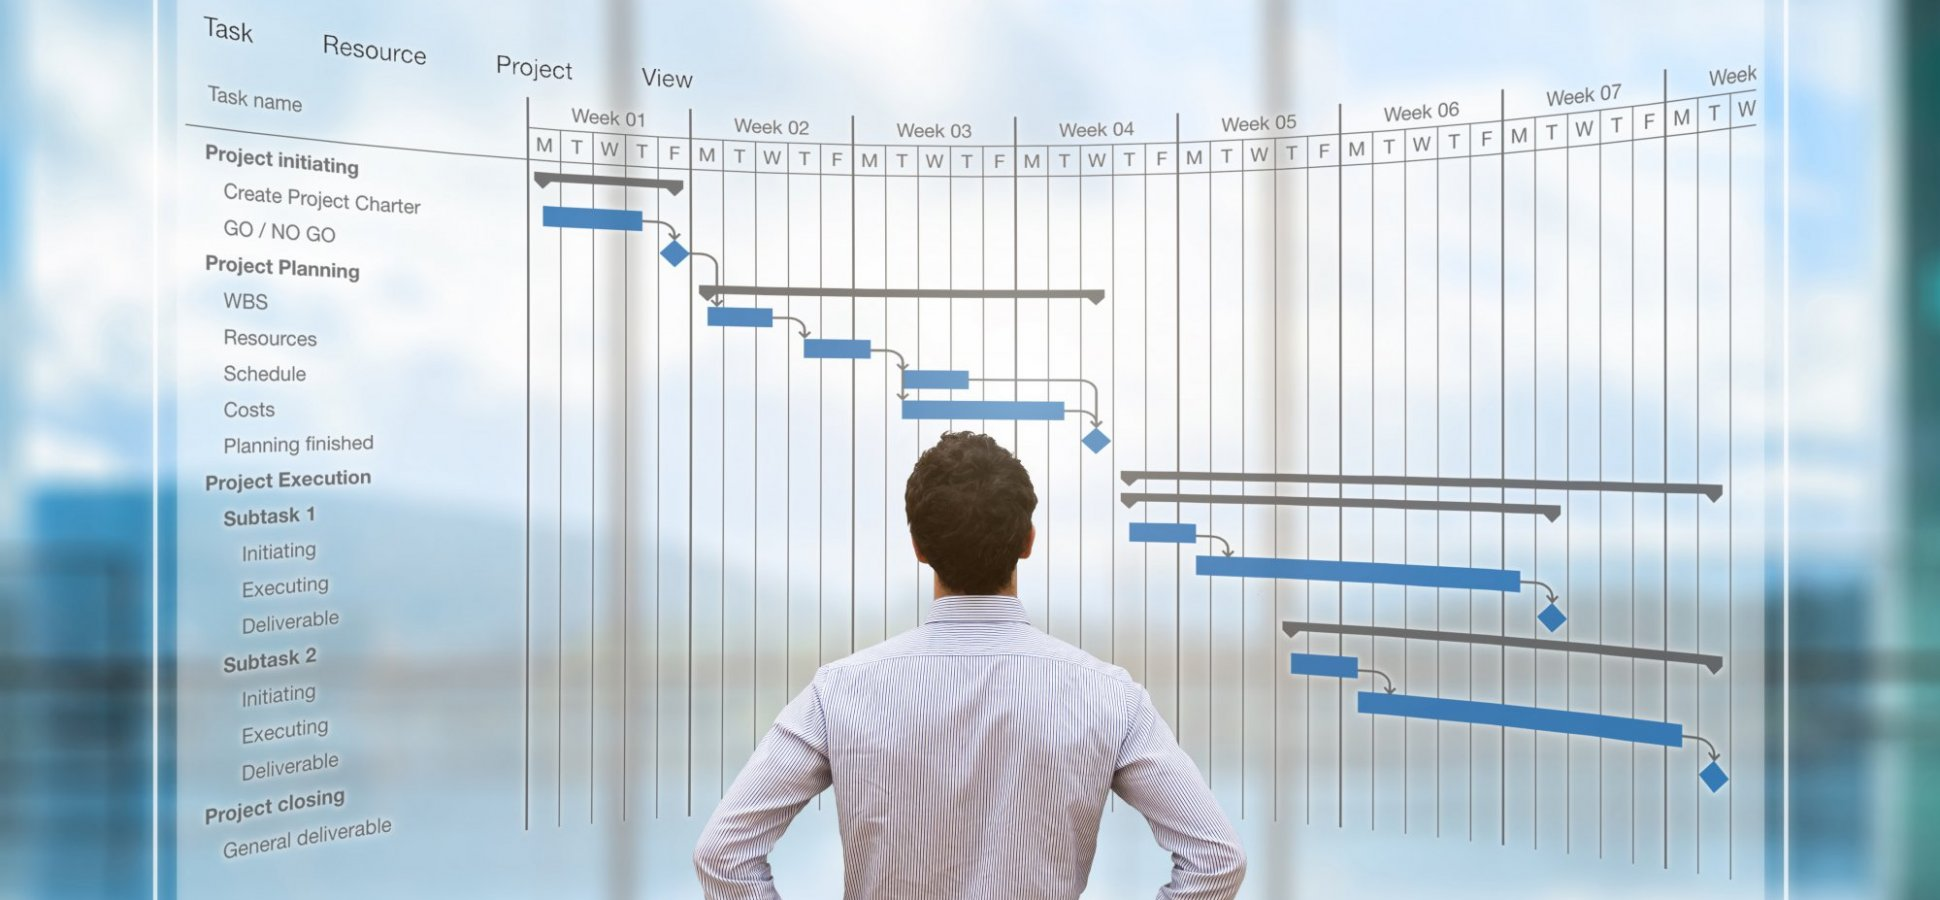 Project Management Software Is Evolving: Here's Why